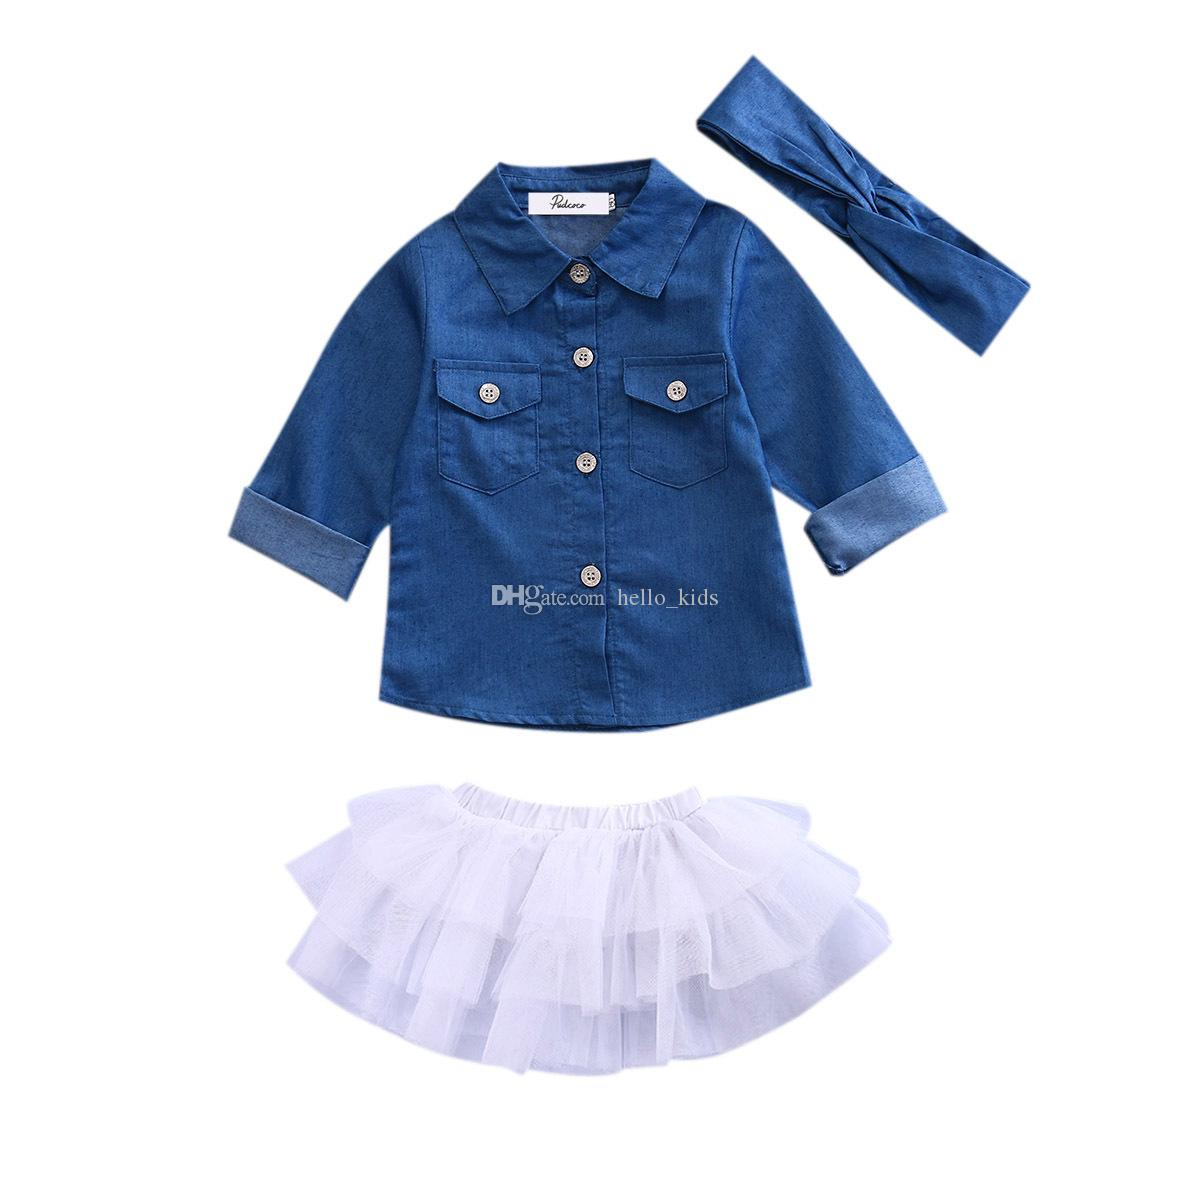 3PCS Toddler Kids Baby Girl Clothes Set Denim Tops T-shirt +Tutu Skirt Headband Outfits Summer Cowboy Suit Children Set 0-5Y